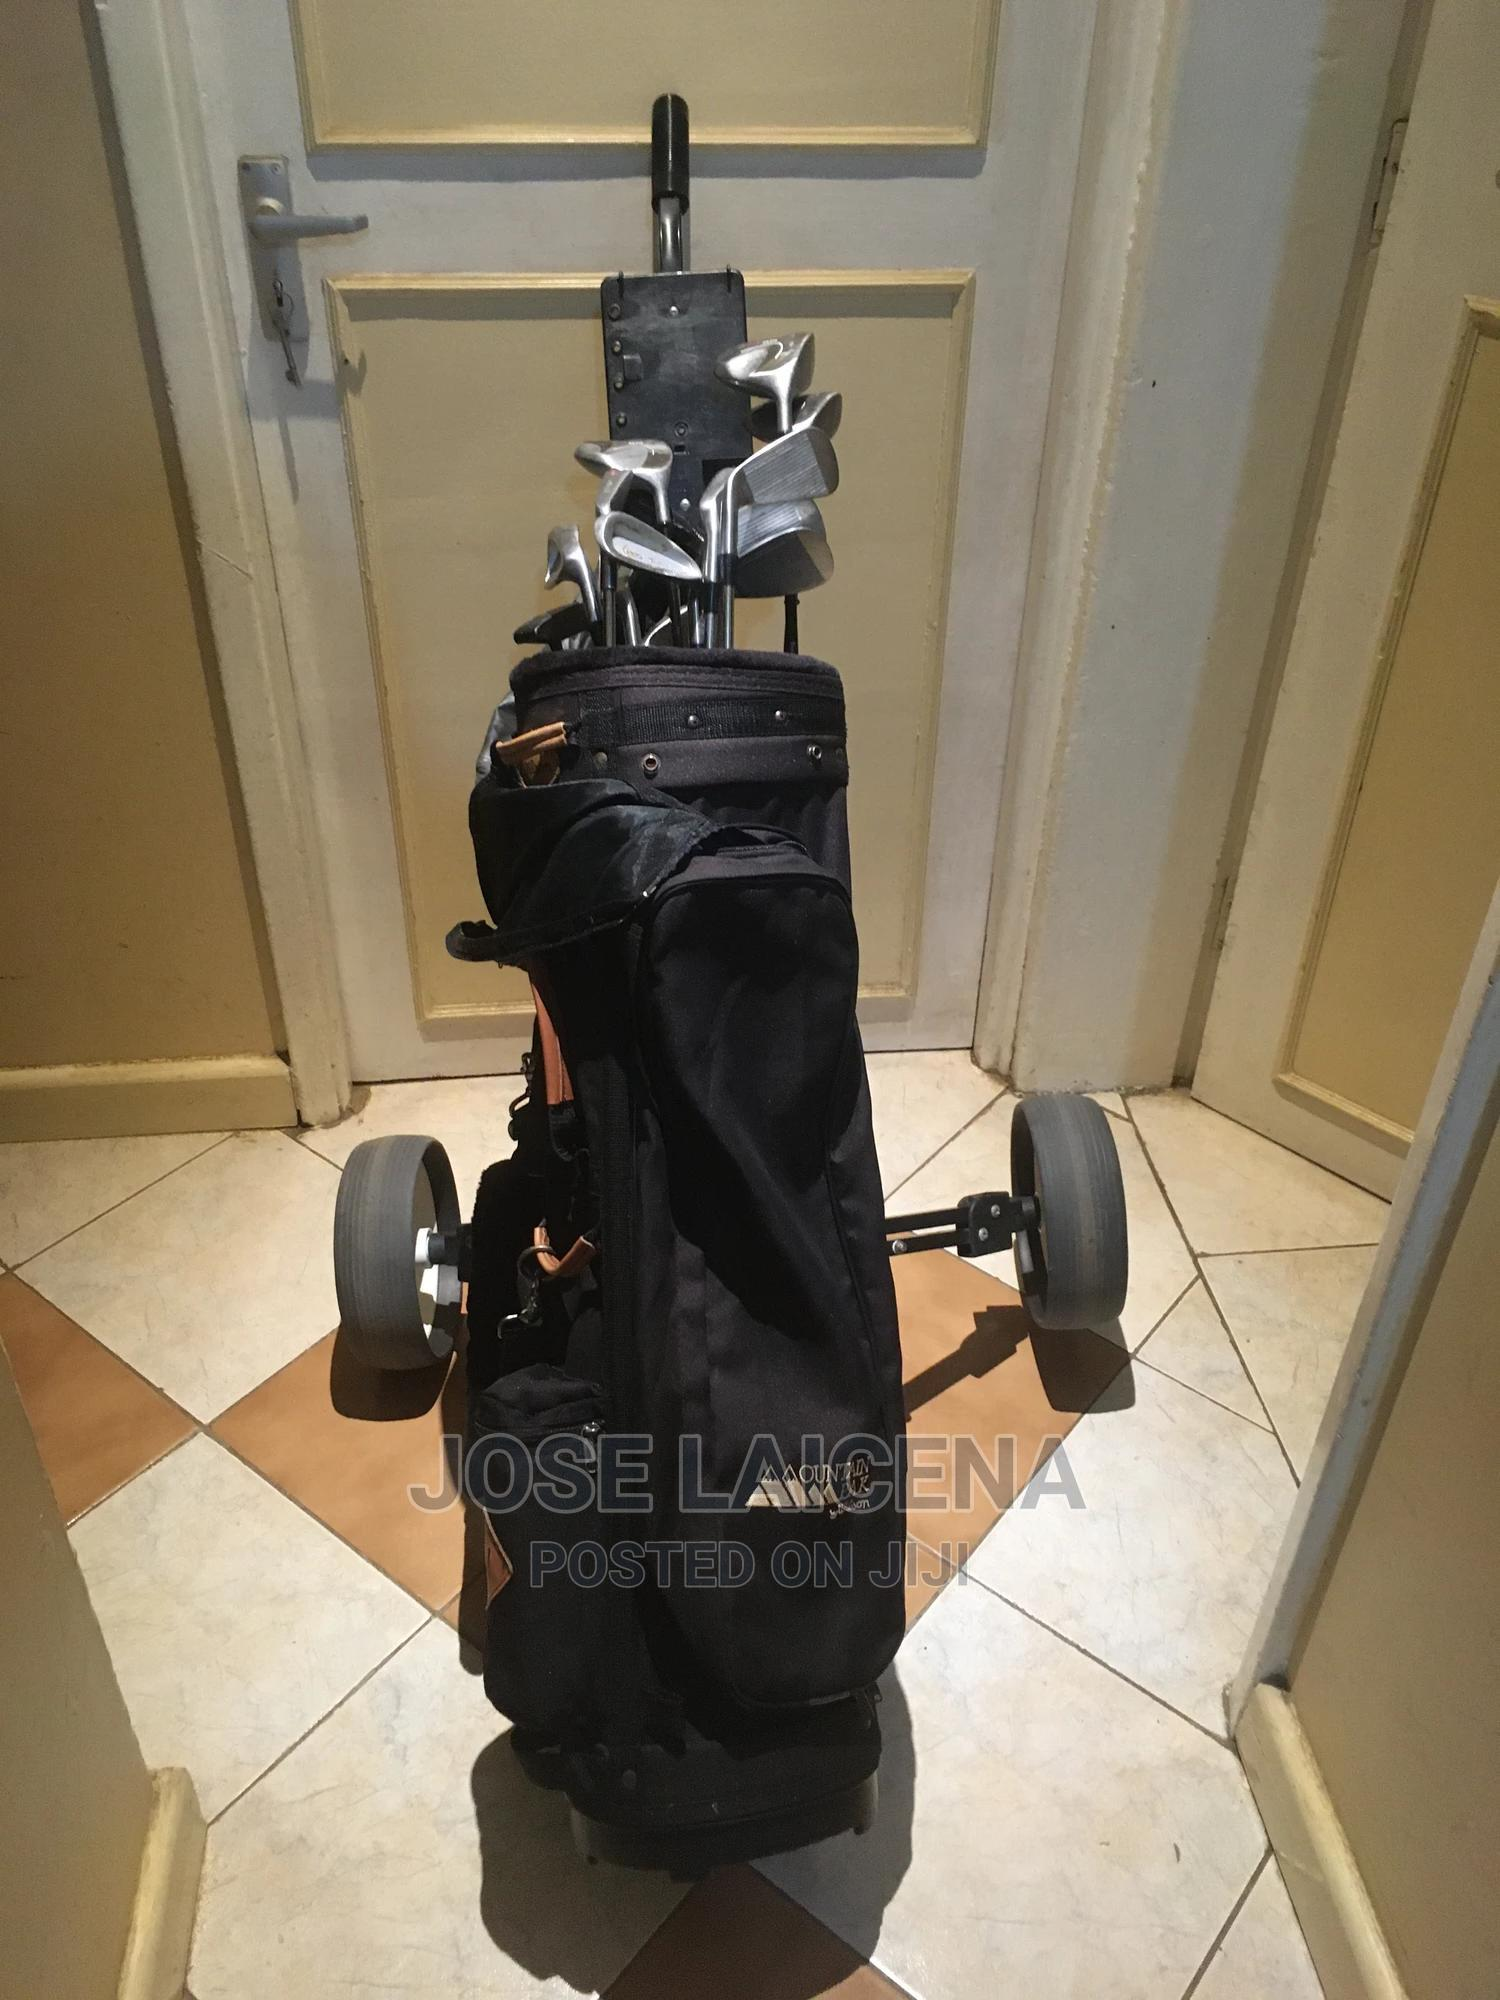 Golf Clubs Complete With All Clubs, Bag and Cart